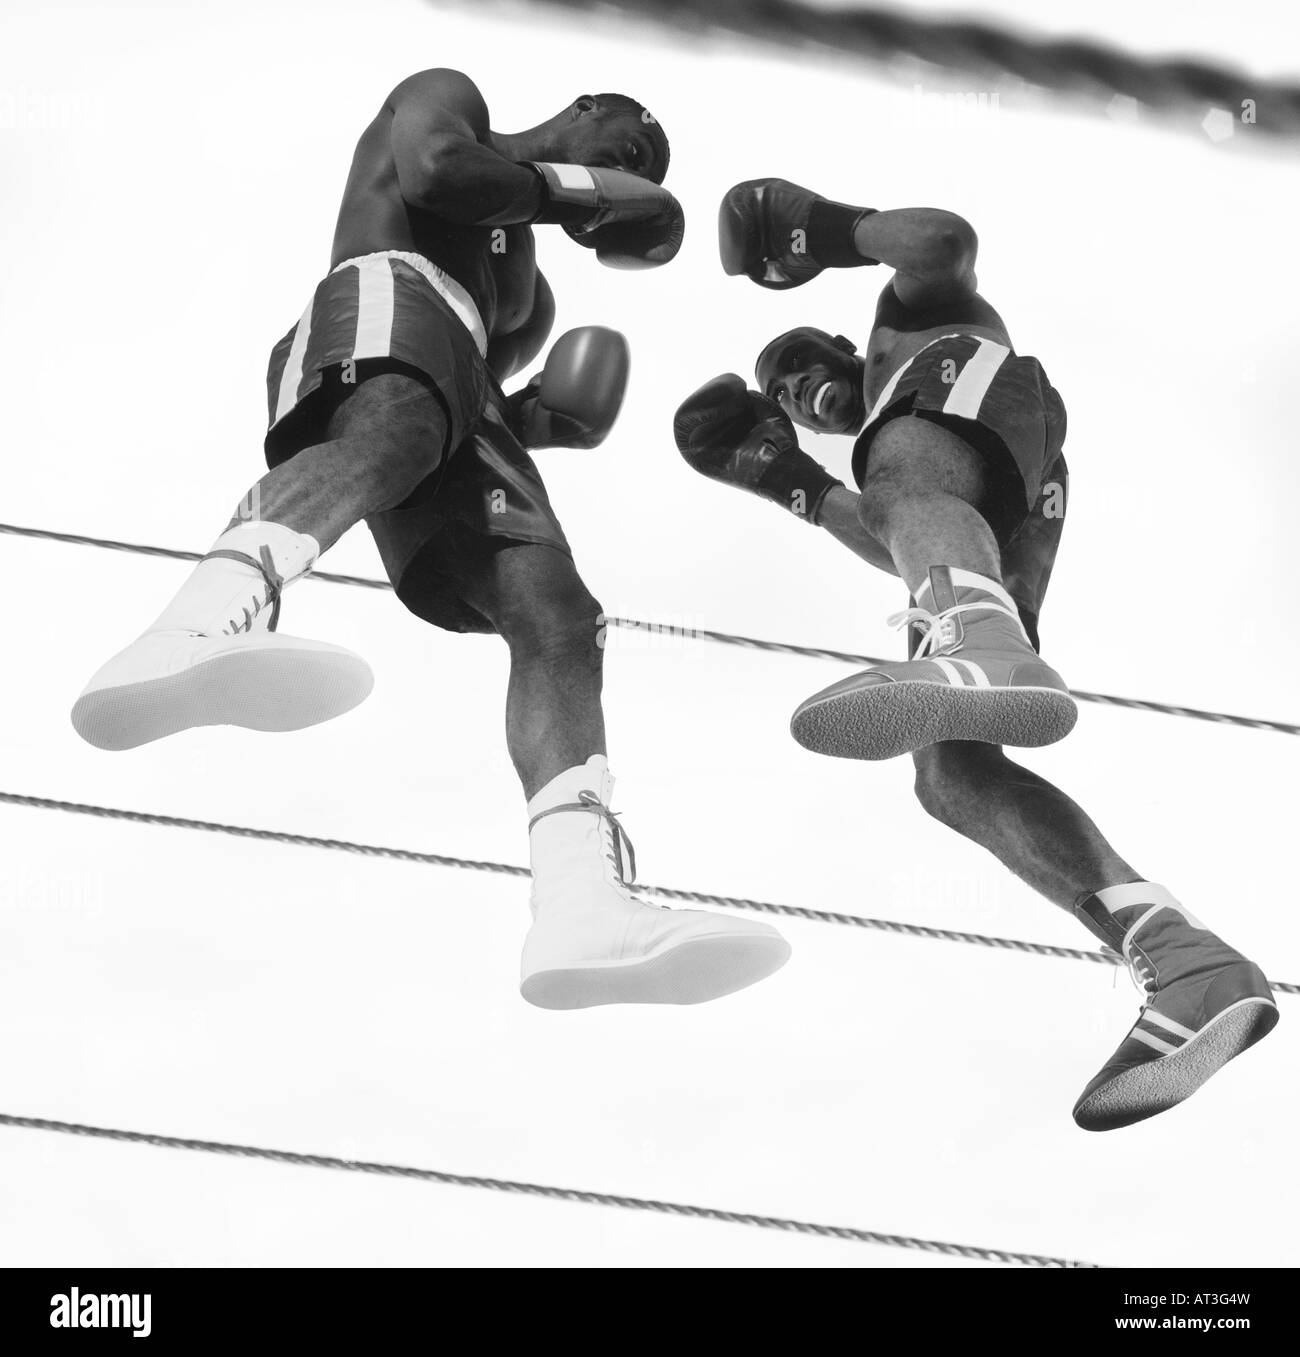 Two boxers fighting in a ring - Stock Image